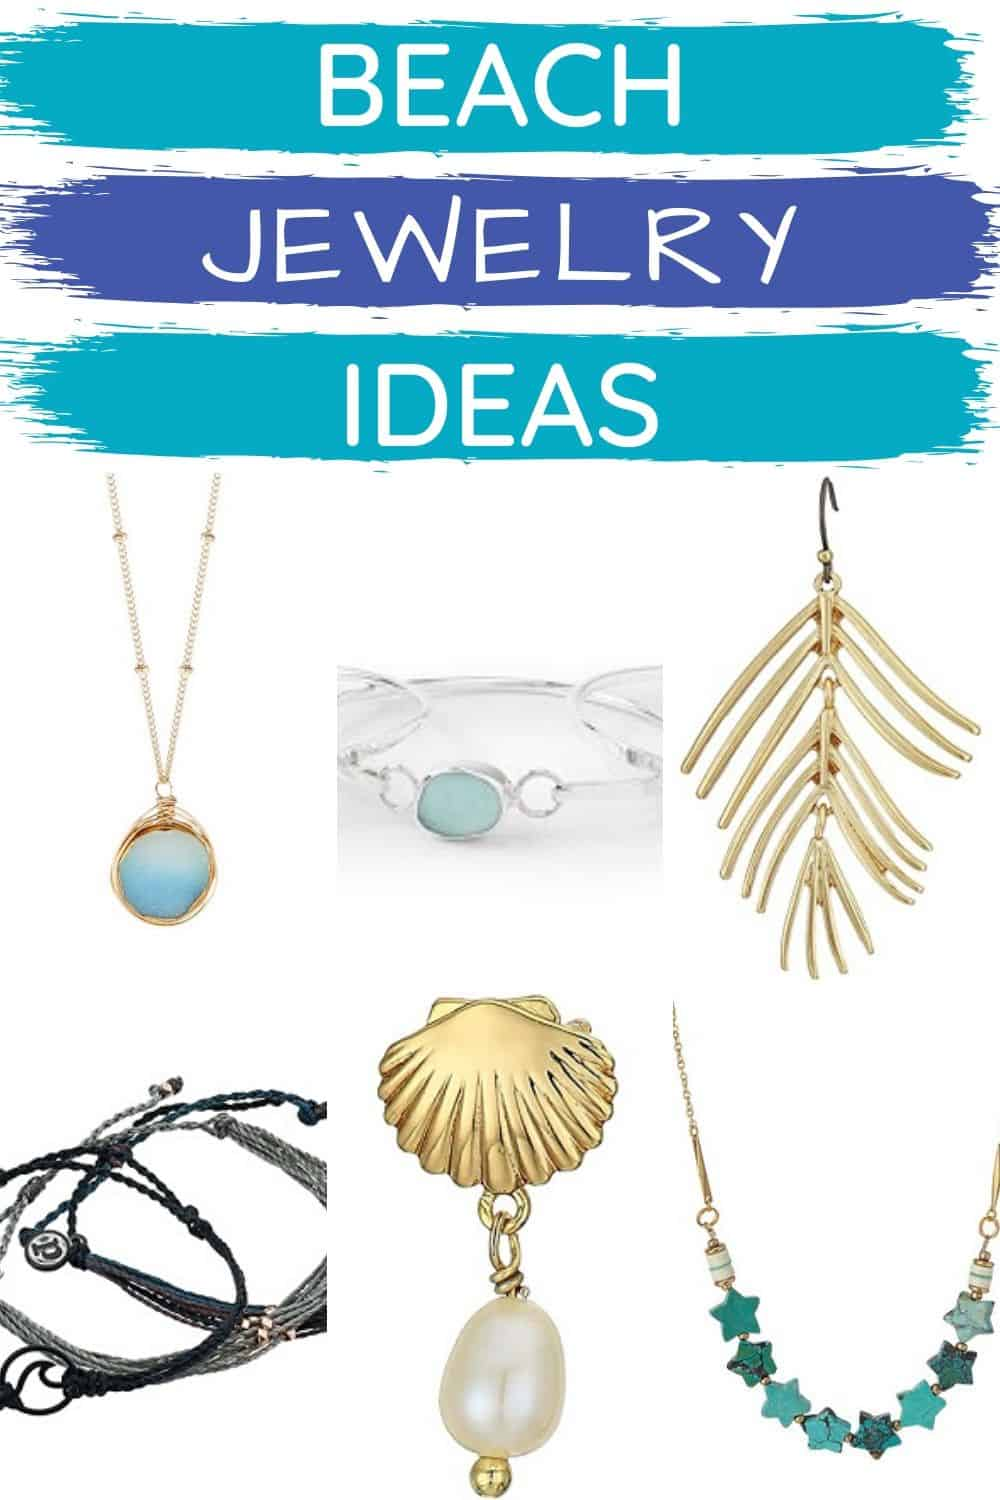 Beach Jewelry Ideas - Beach Jewelry Gifts